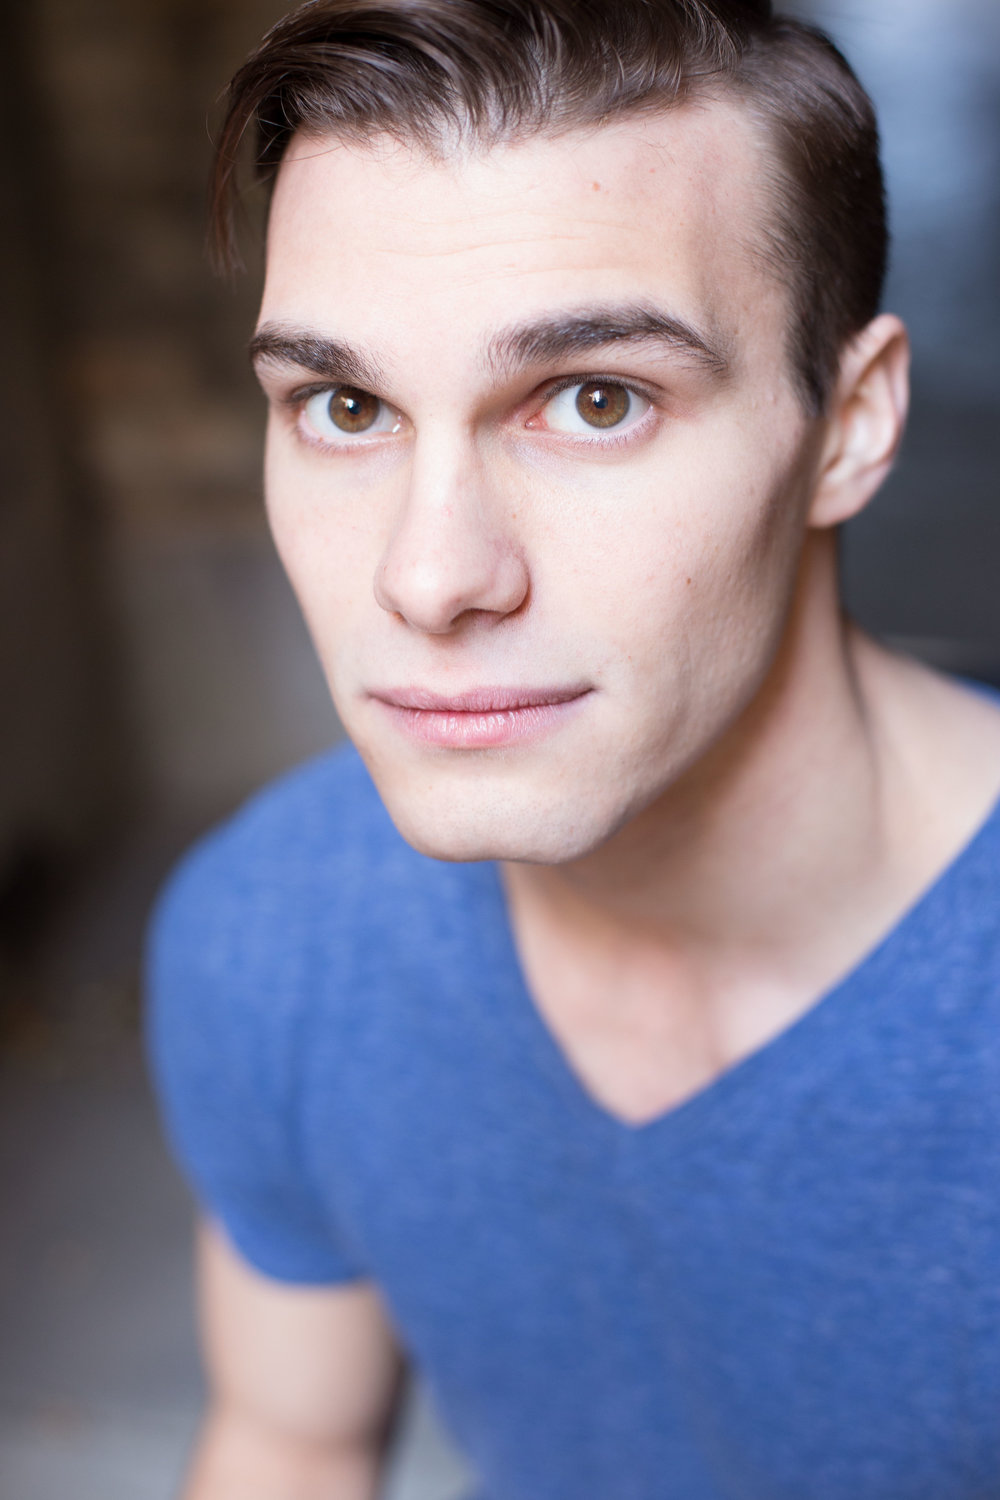 Headshot 2 (clean-shave).jpg